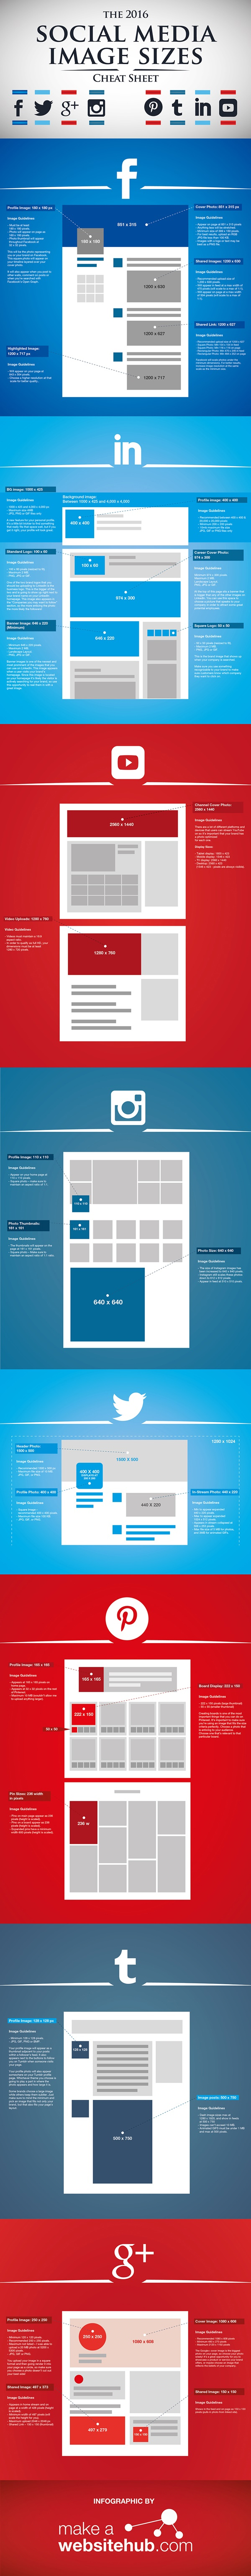 The 2016 Social Media Image Size Cheat Sheet